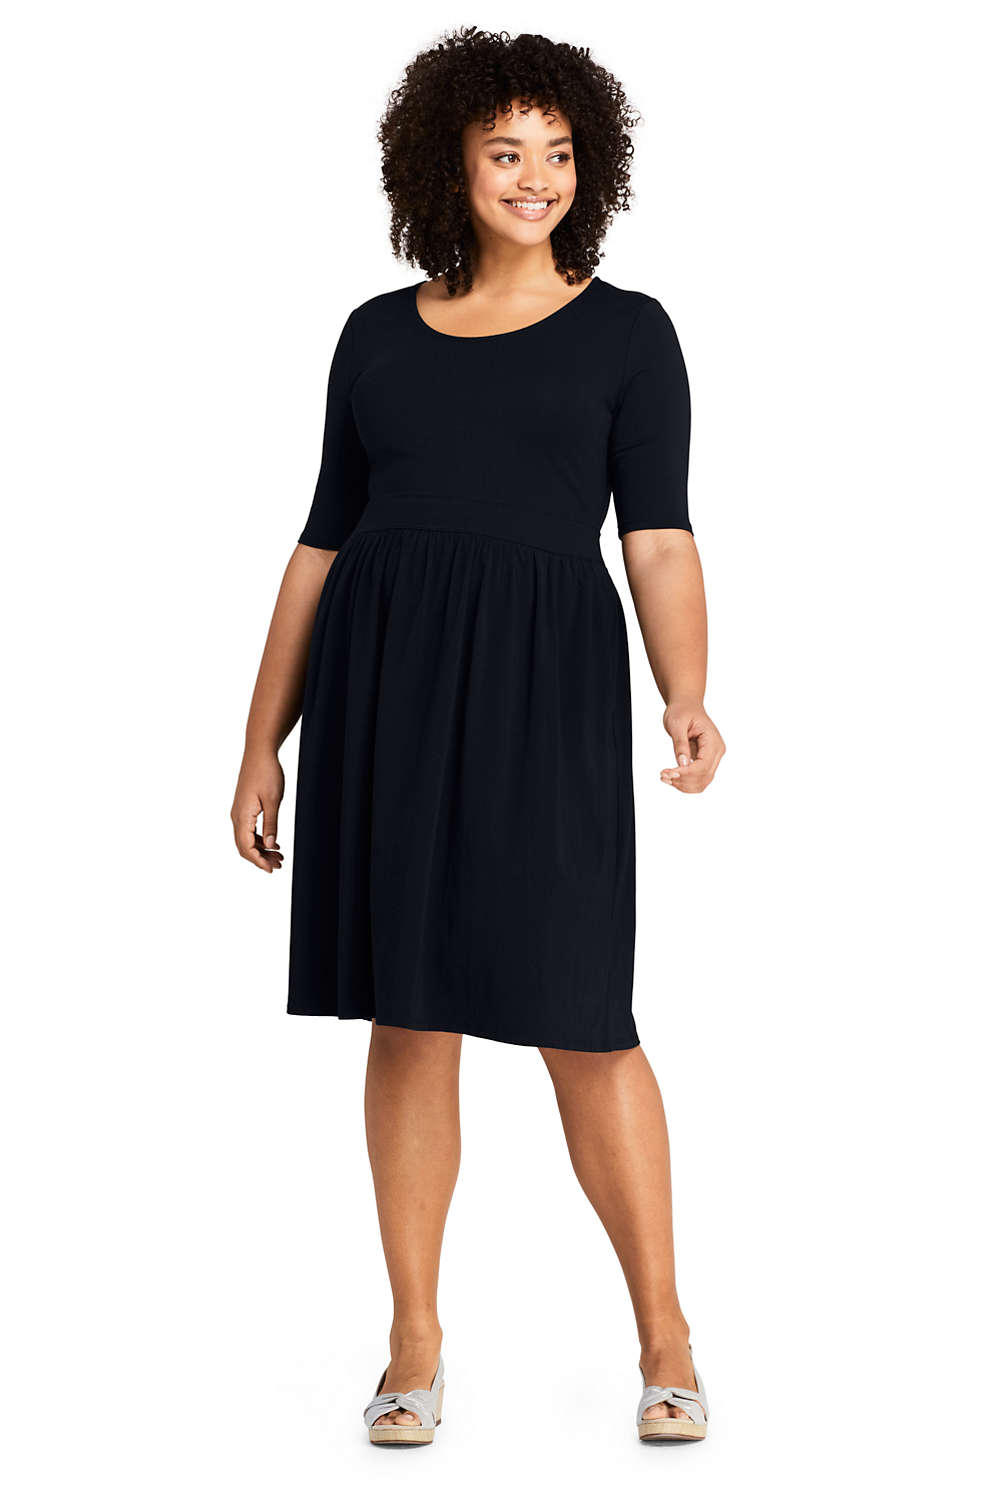 a61889facc8 Women s Plus Size Elbow Sleeve Fit and Flare Dress from Lands  End